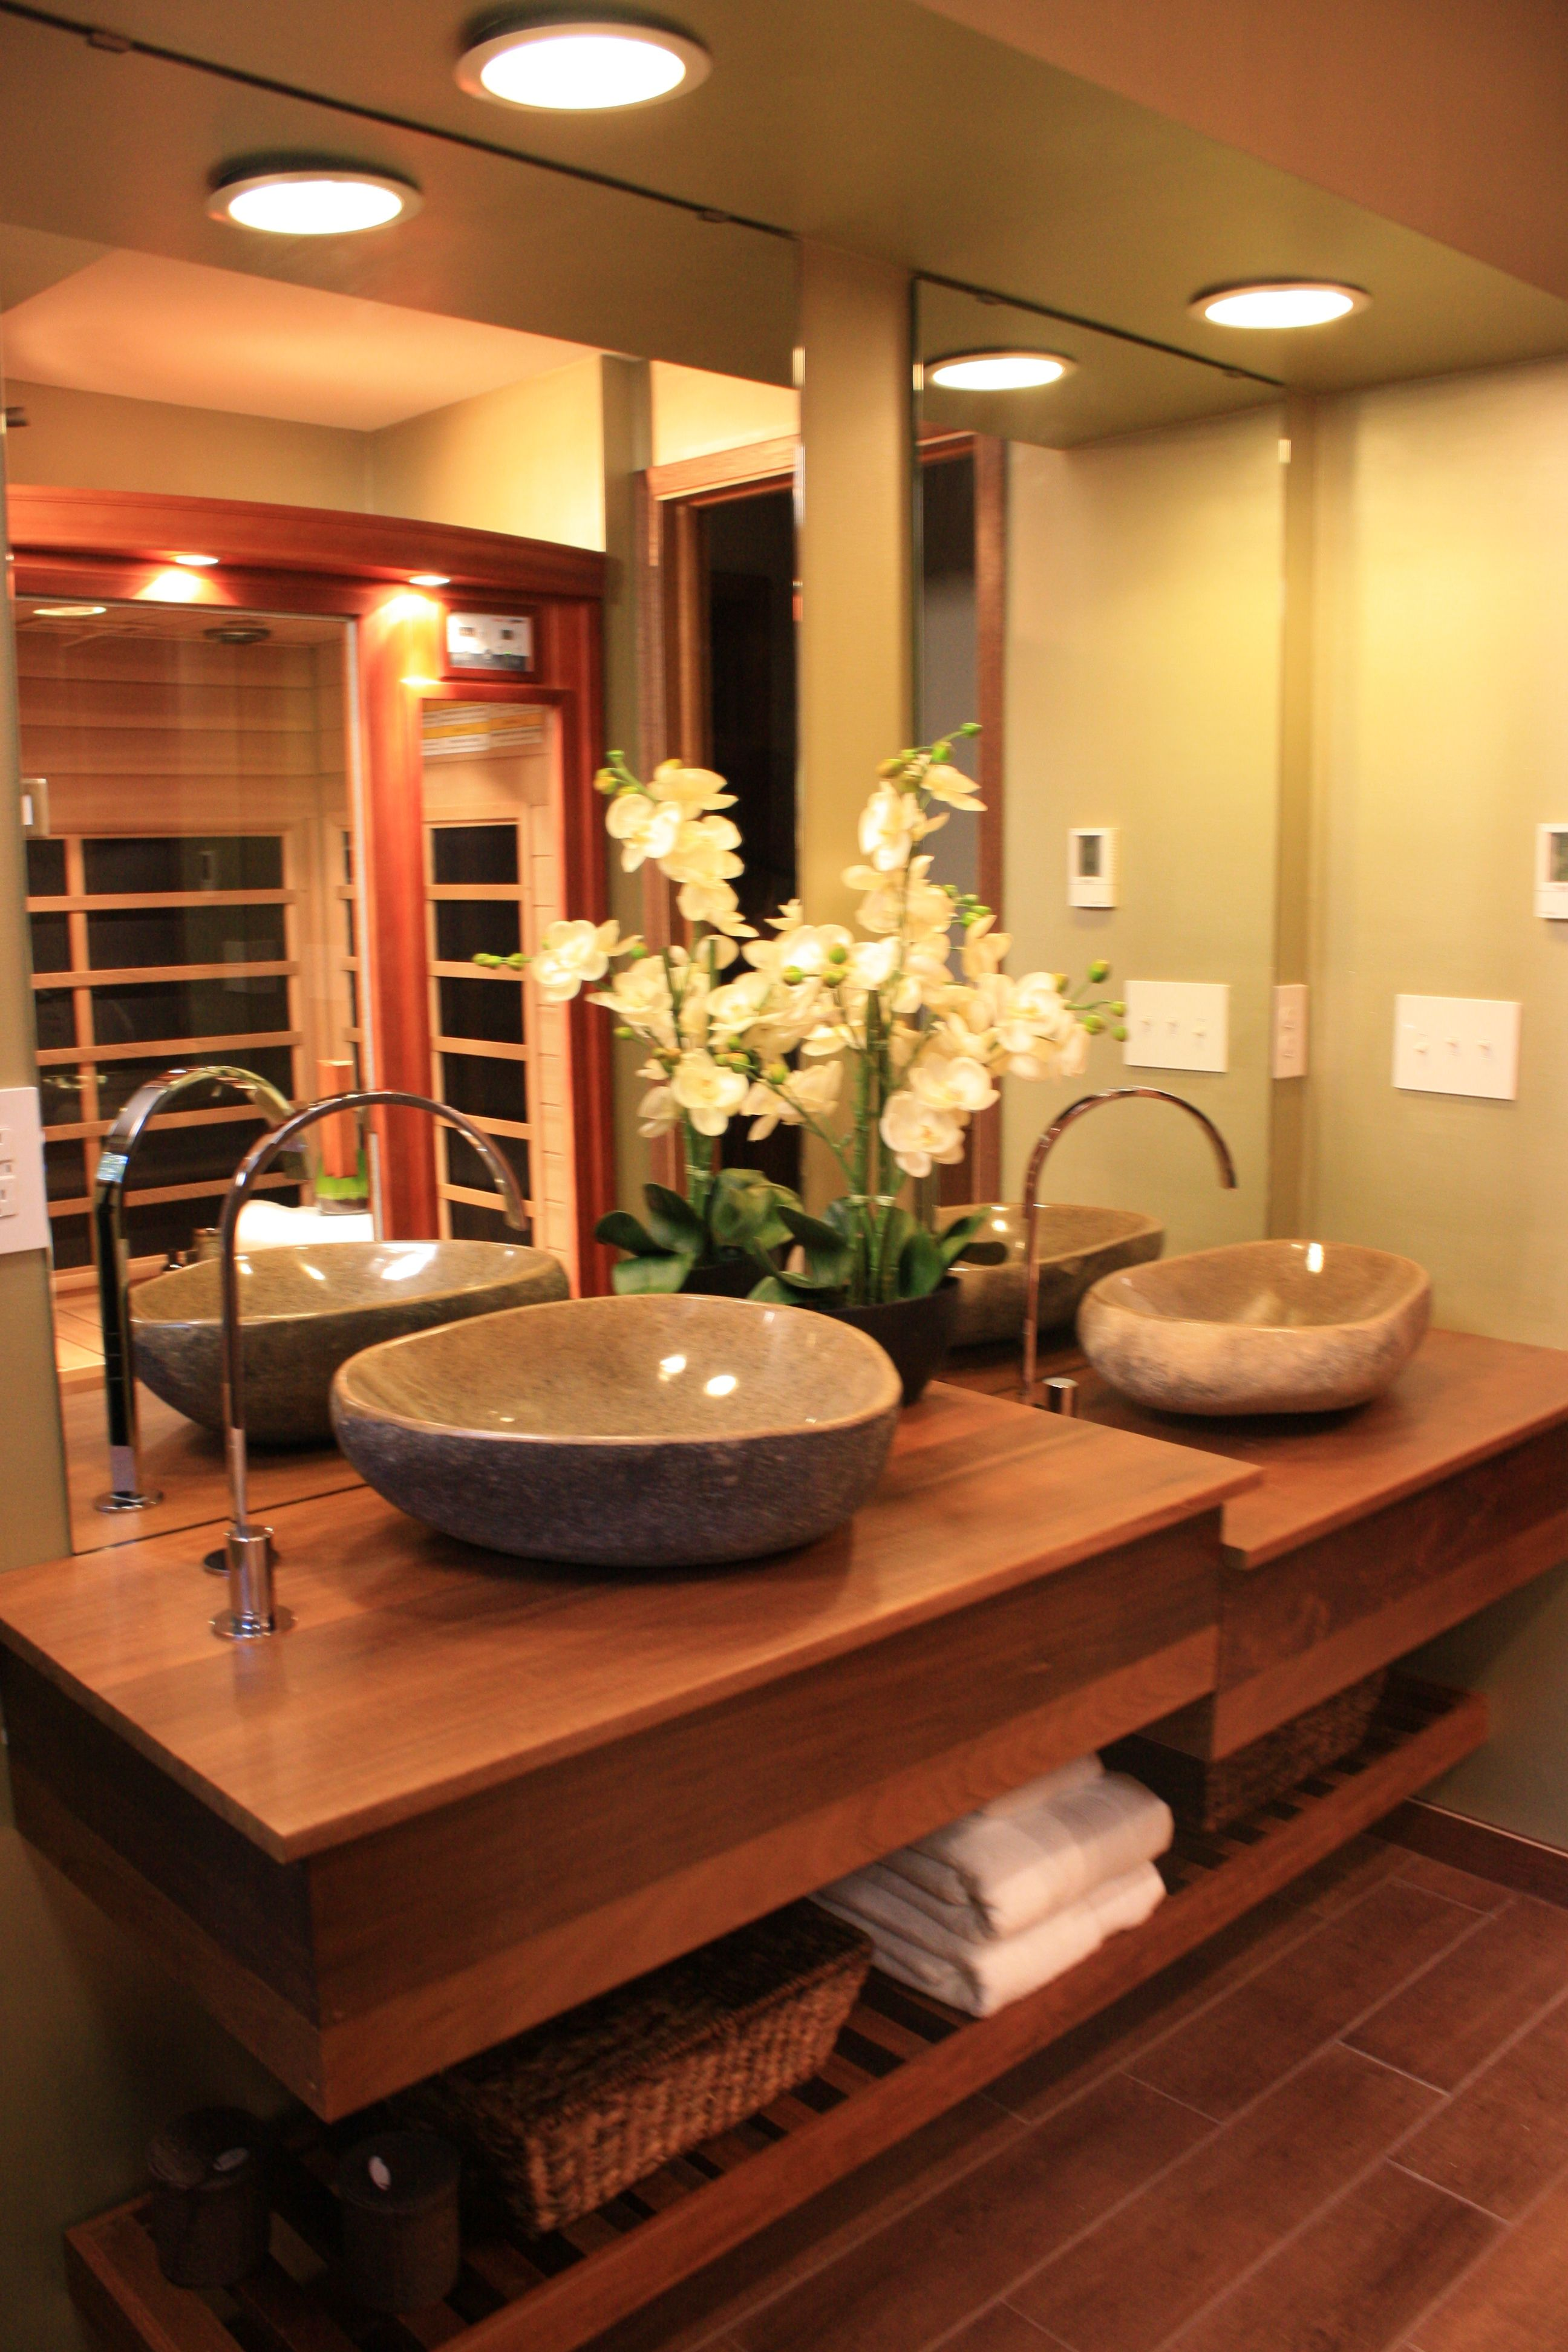 Teak Bathroom Countertop I Custom Designed Tiered Creative - Teak bathroom countertop